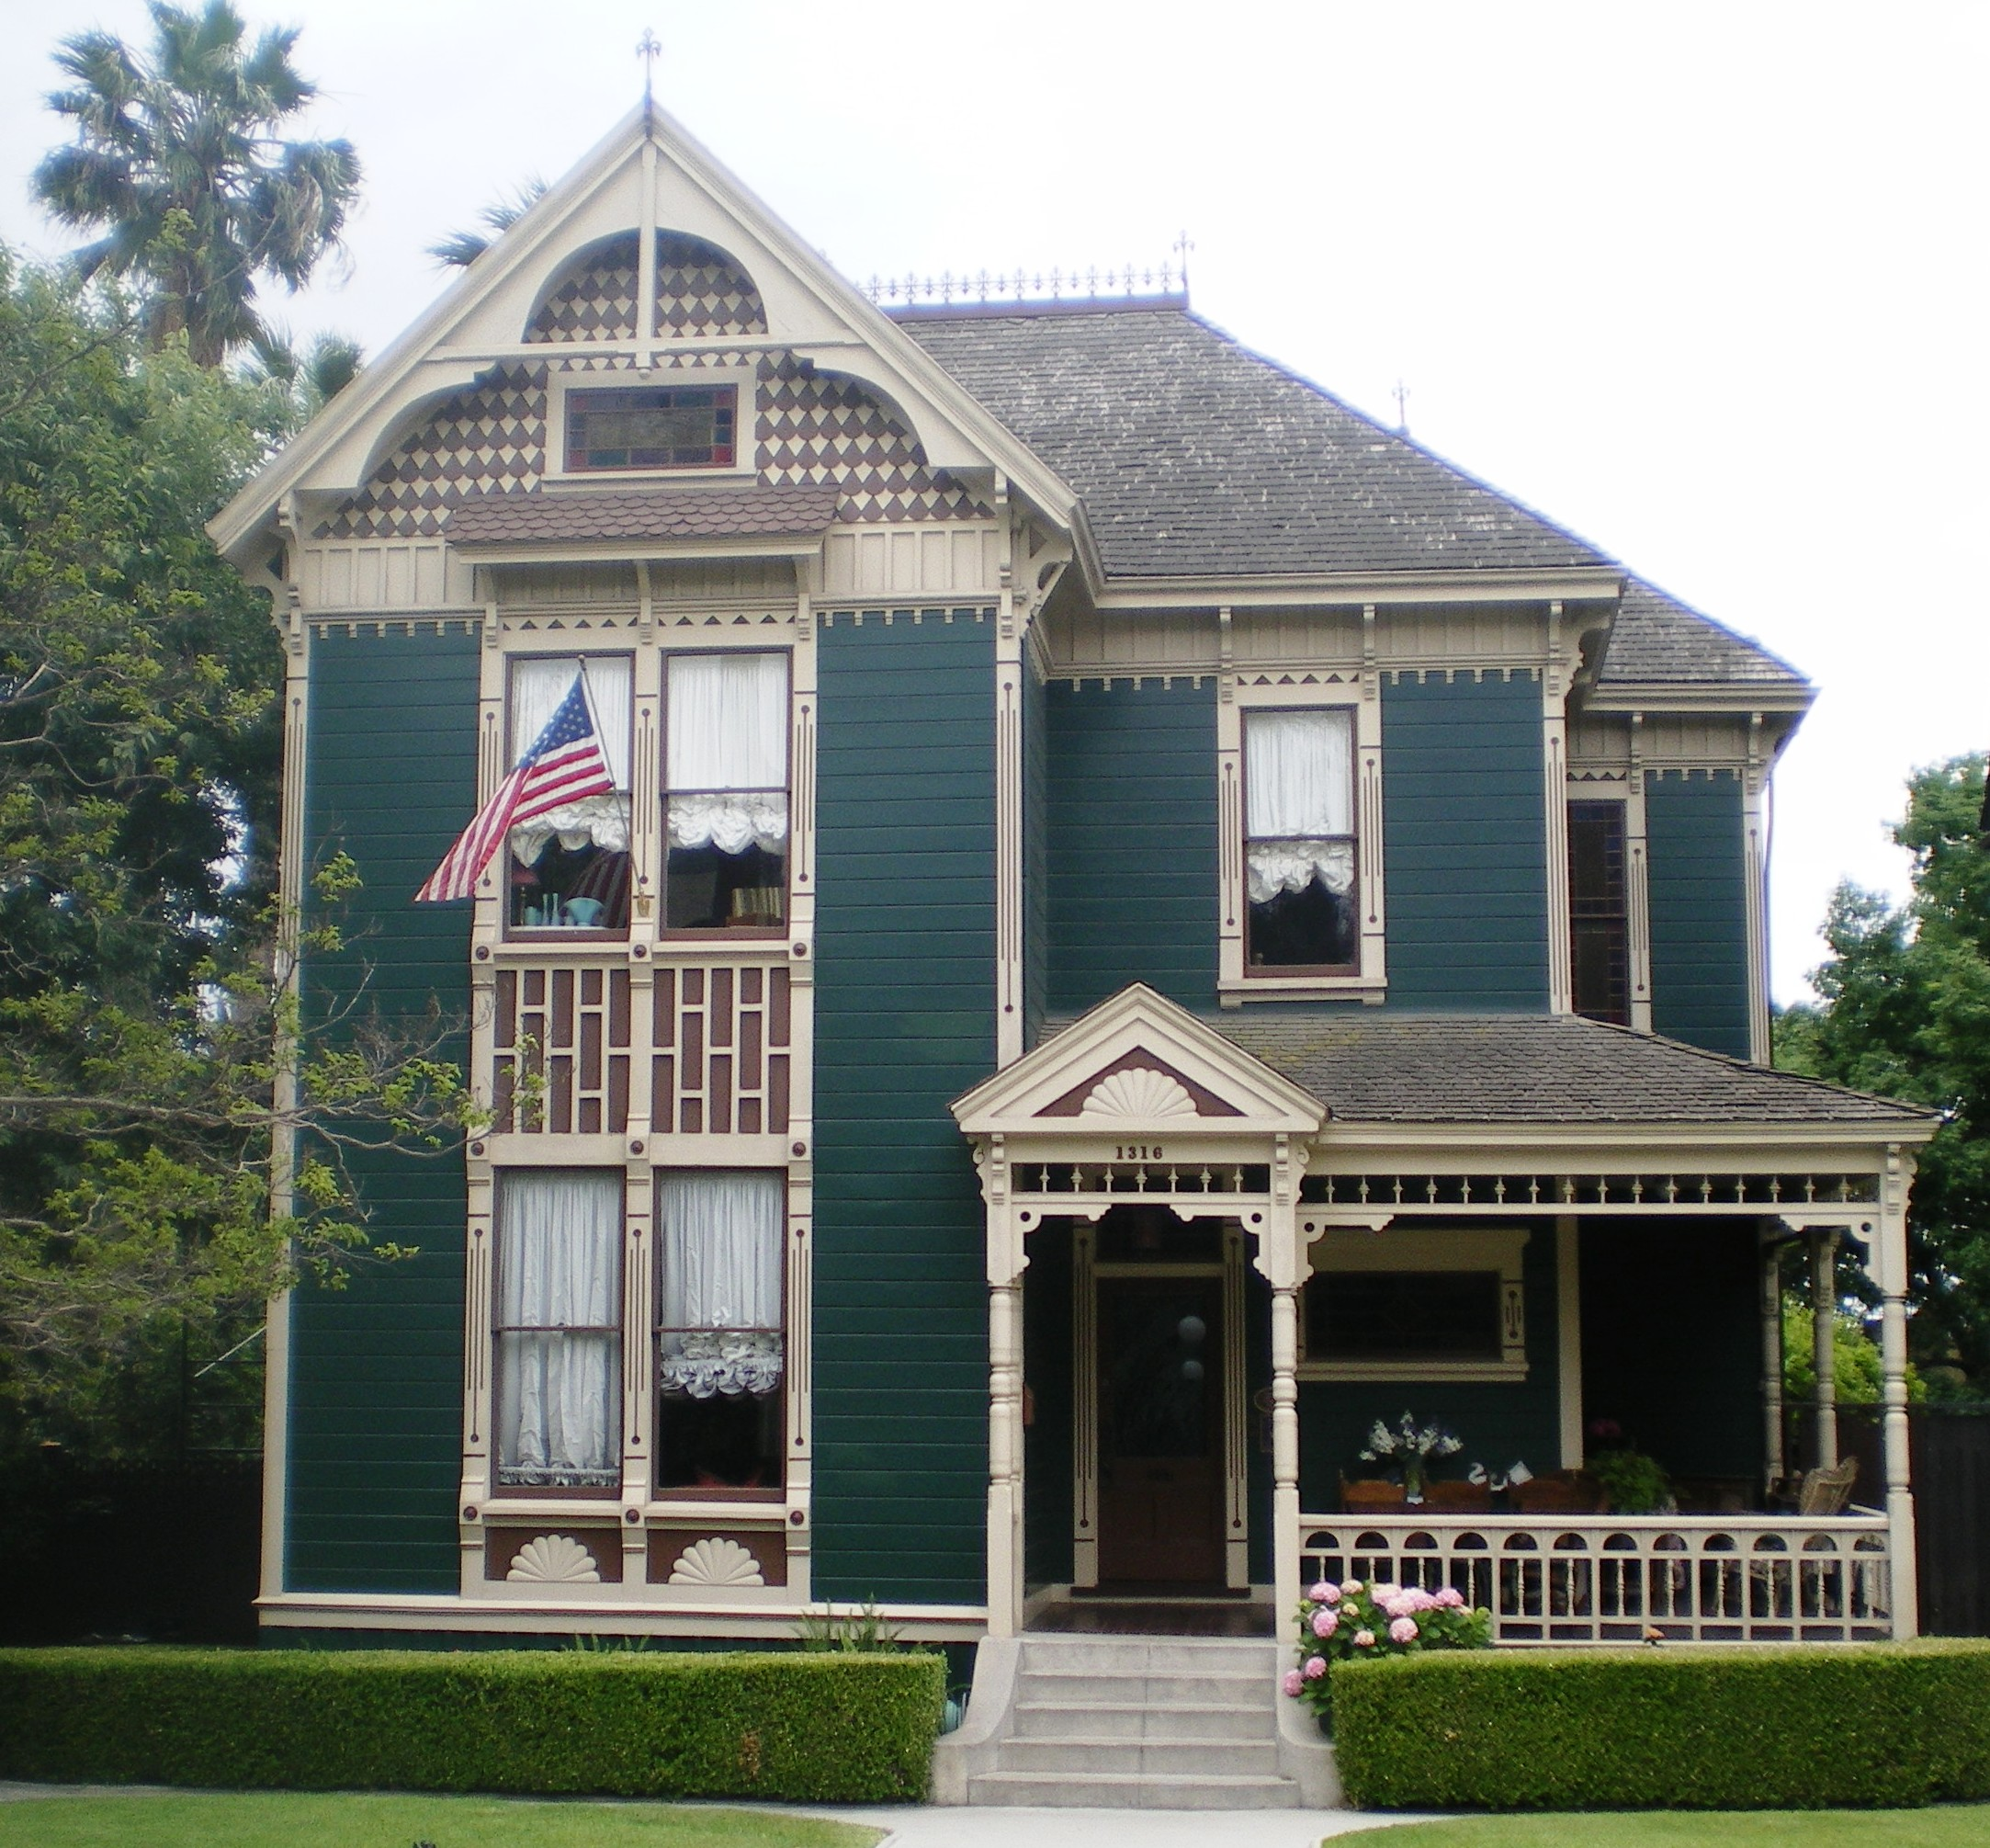 Los Angeles California Homes: File:House At 1316 Carroll Avenue, Los Angeles.JPG